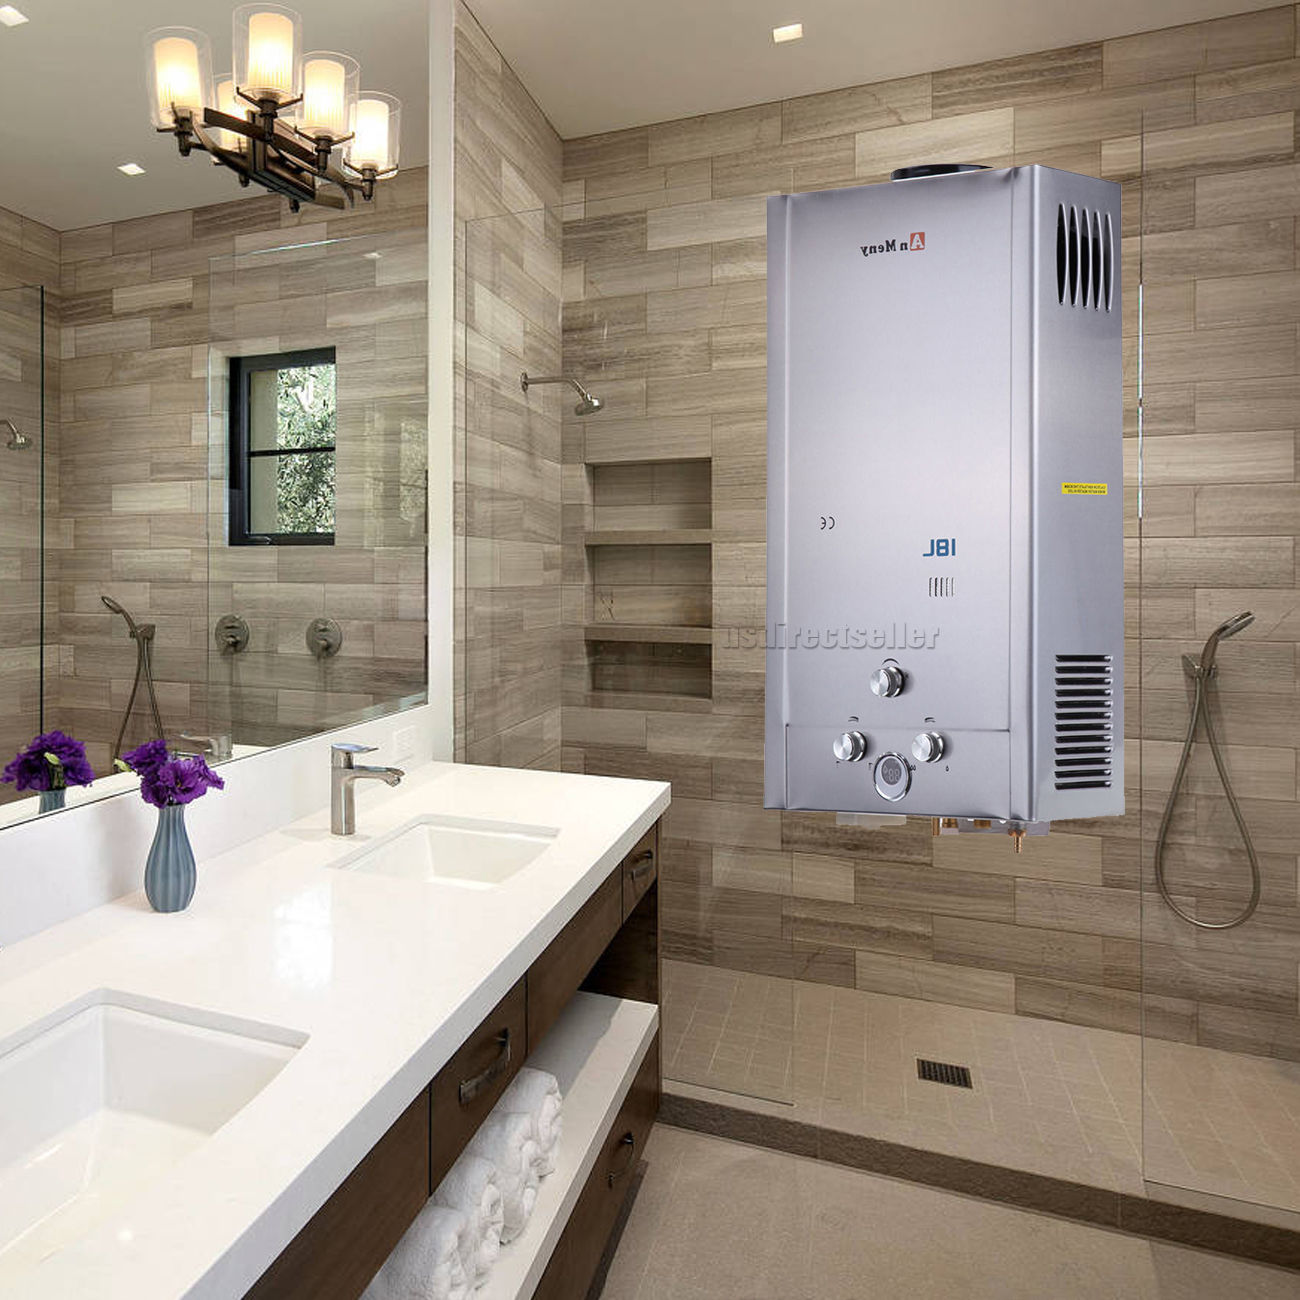 18L 5GPM Instant Tankless Hot Water Heater LPG Propane Gas 32KW Bolier W/ Shower